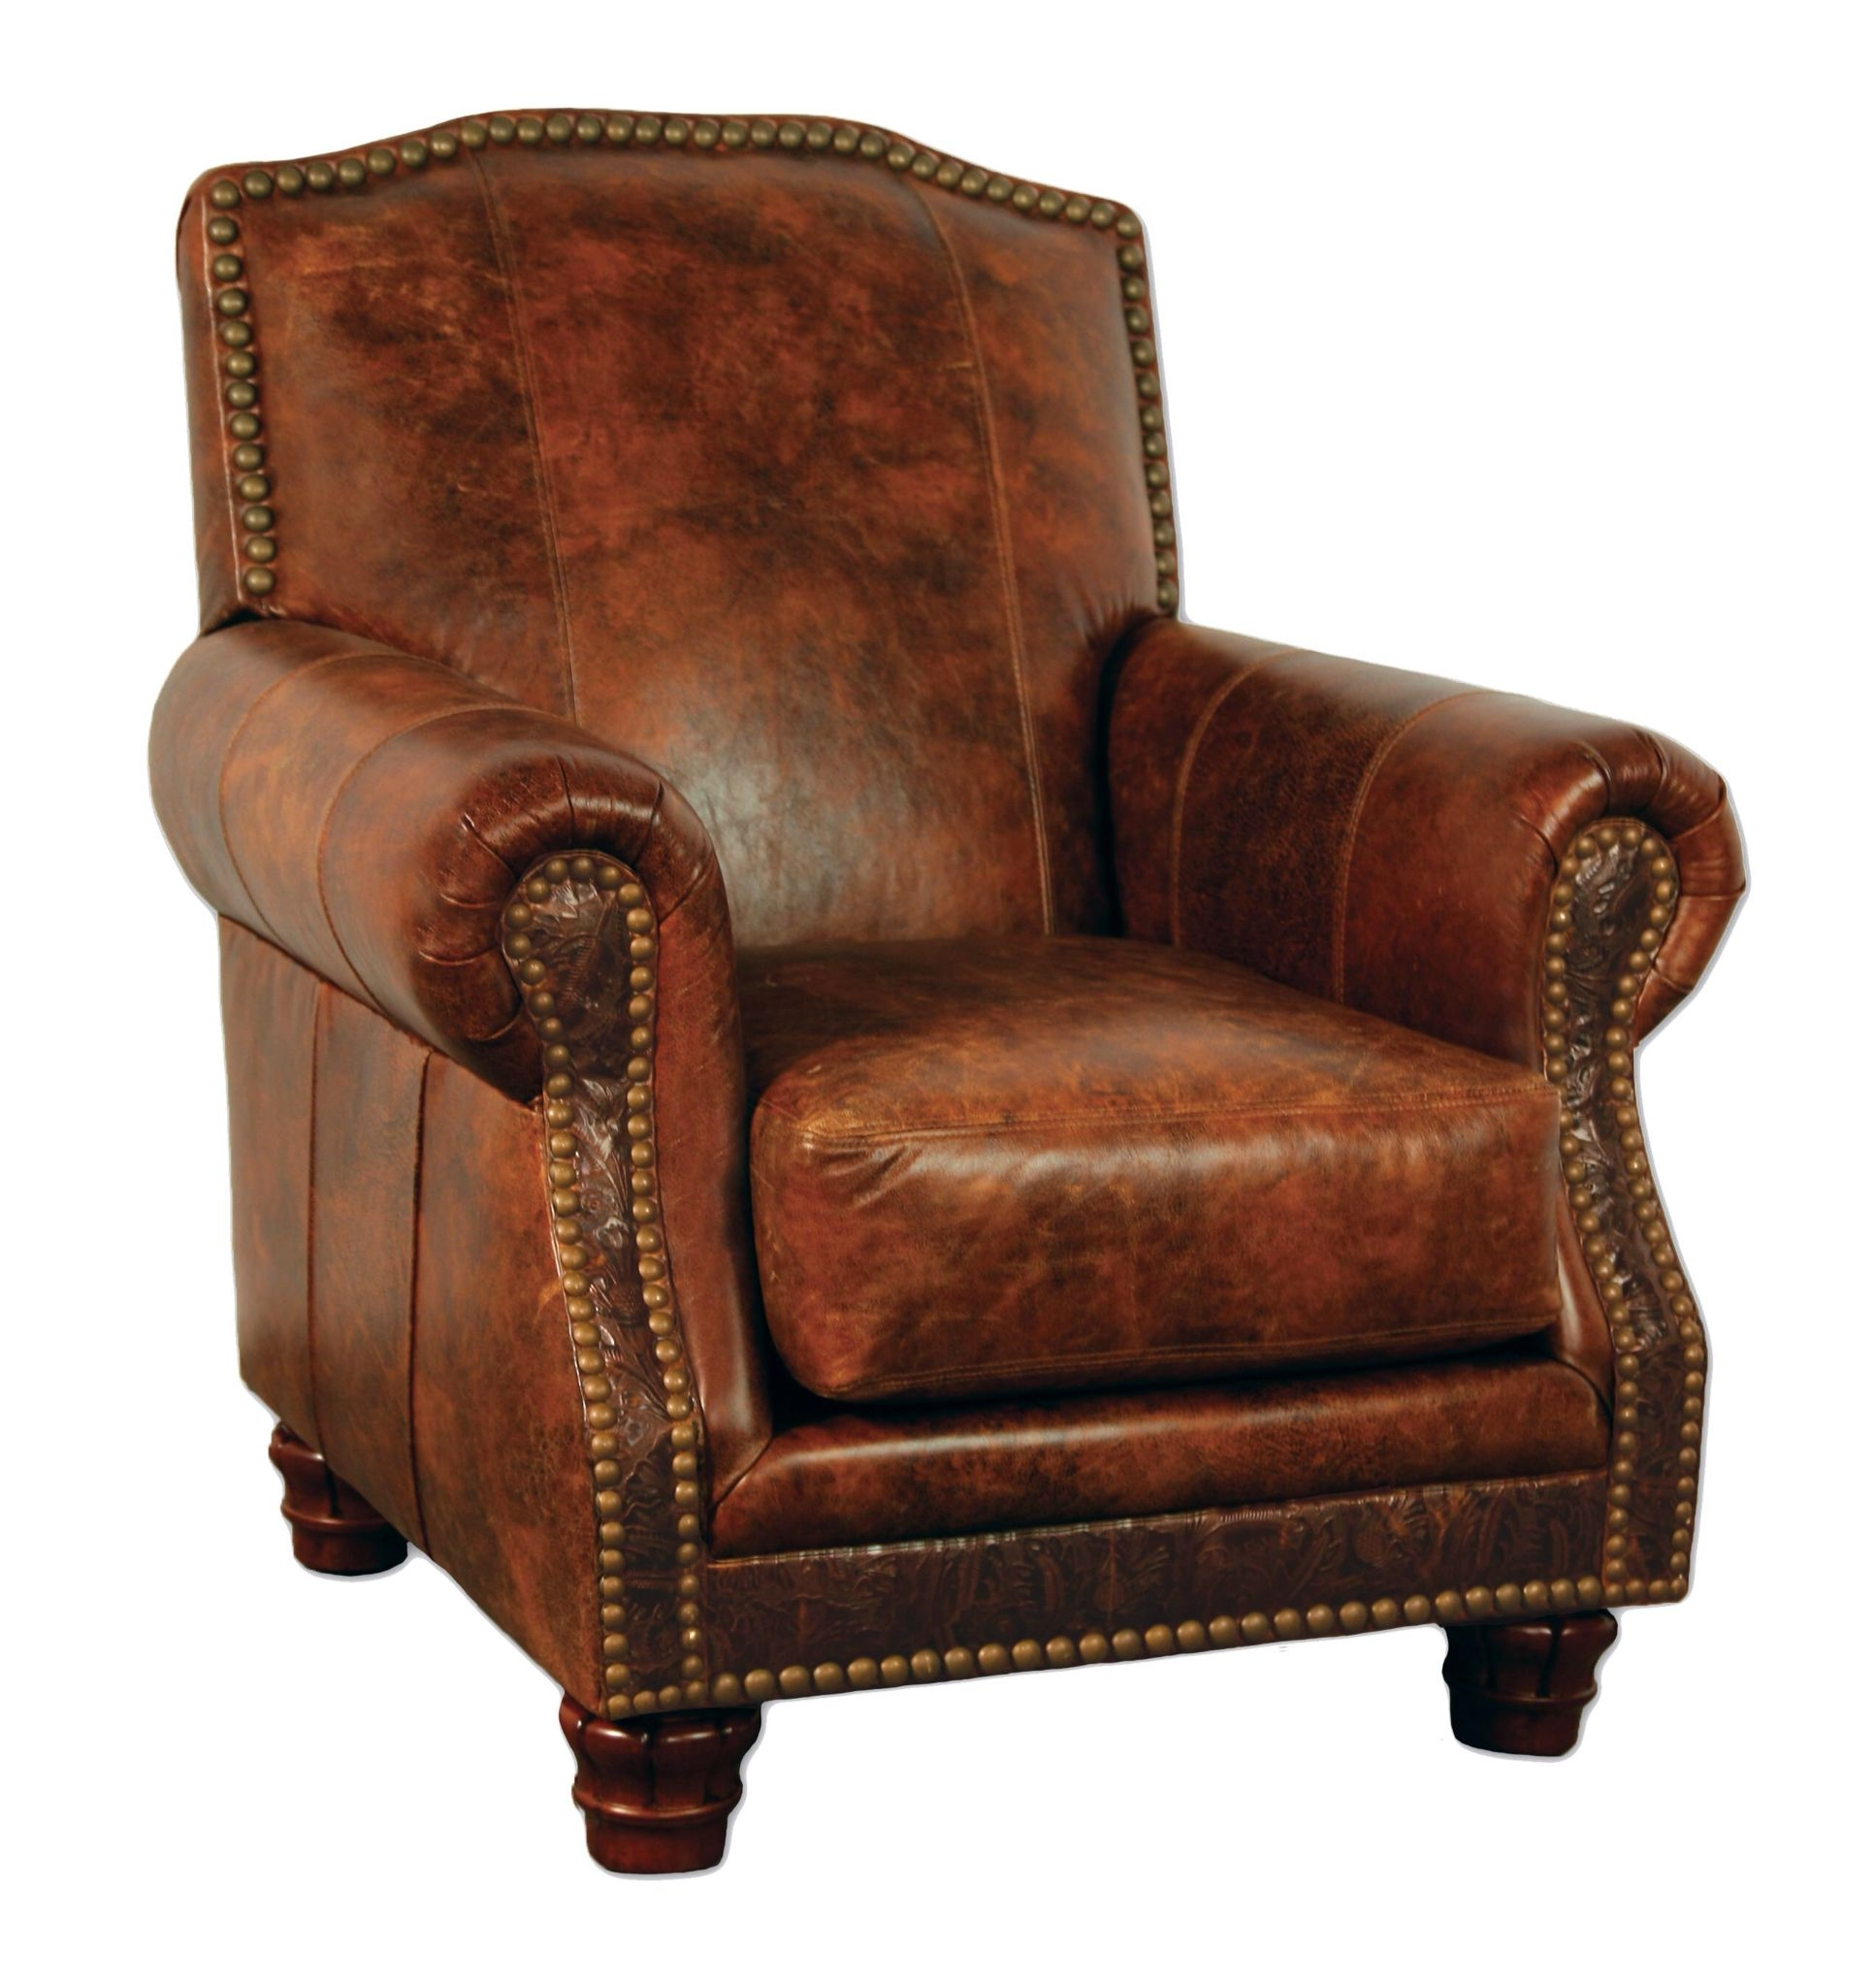 Marvelous Home Western Furniture Western Chairs Western Accent Chairs 1